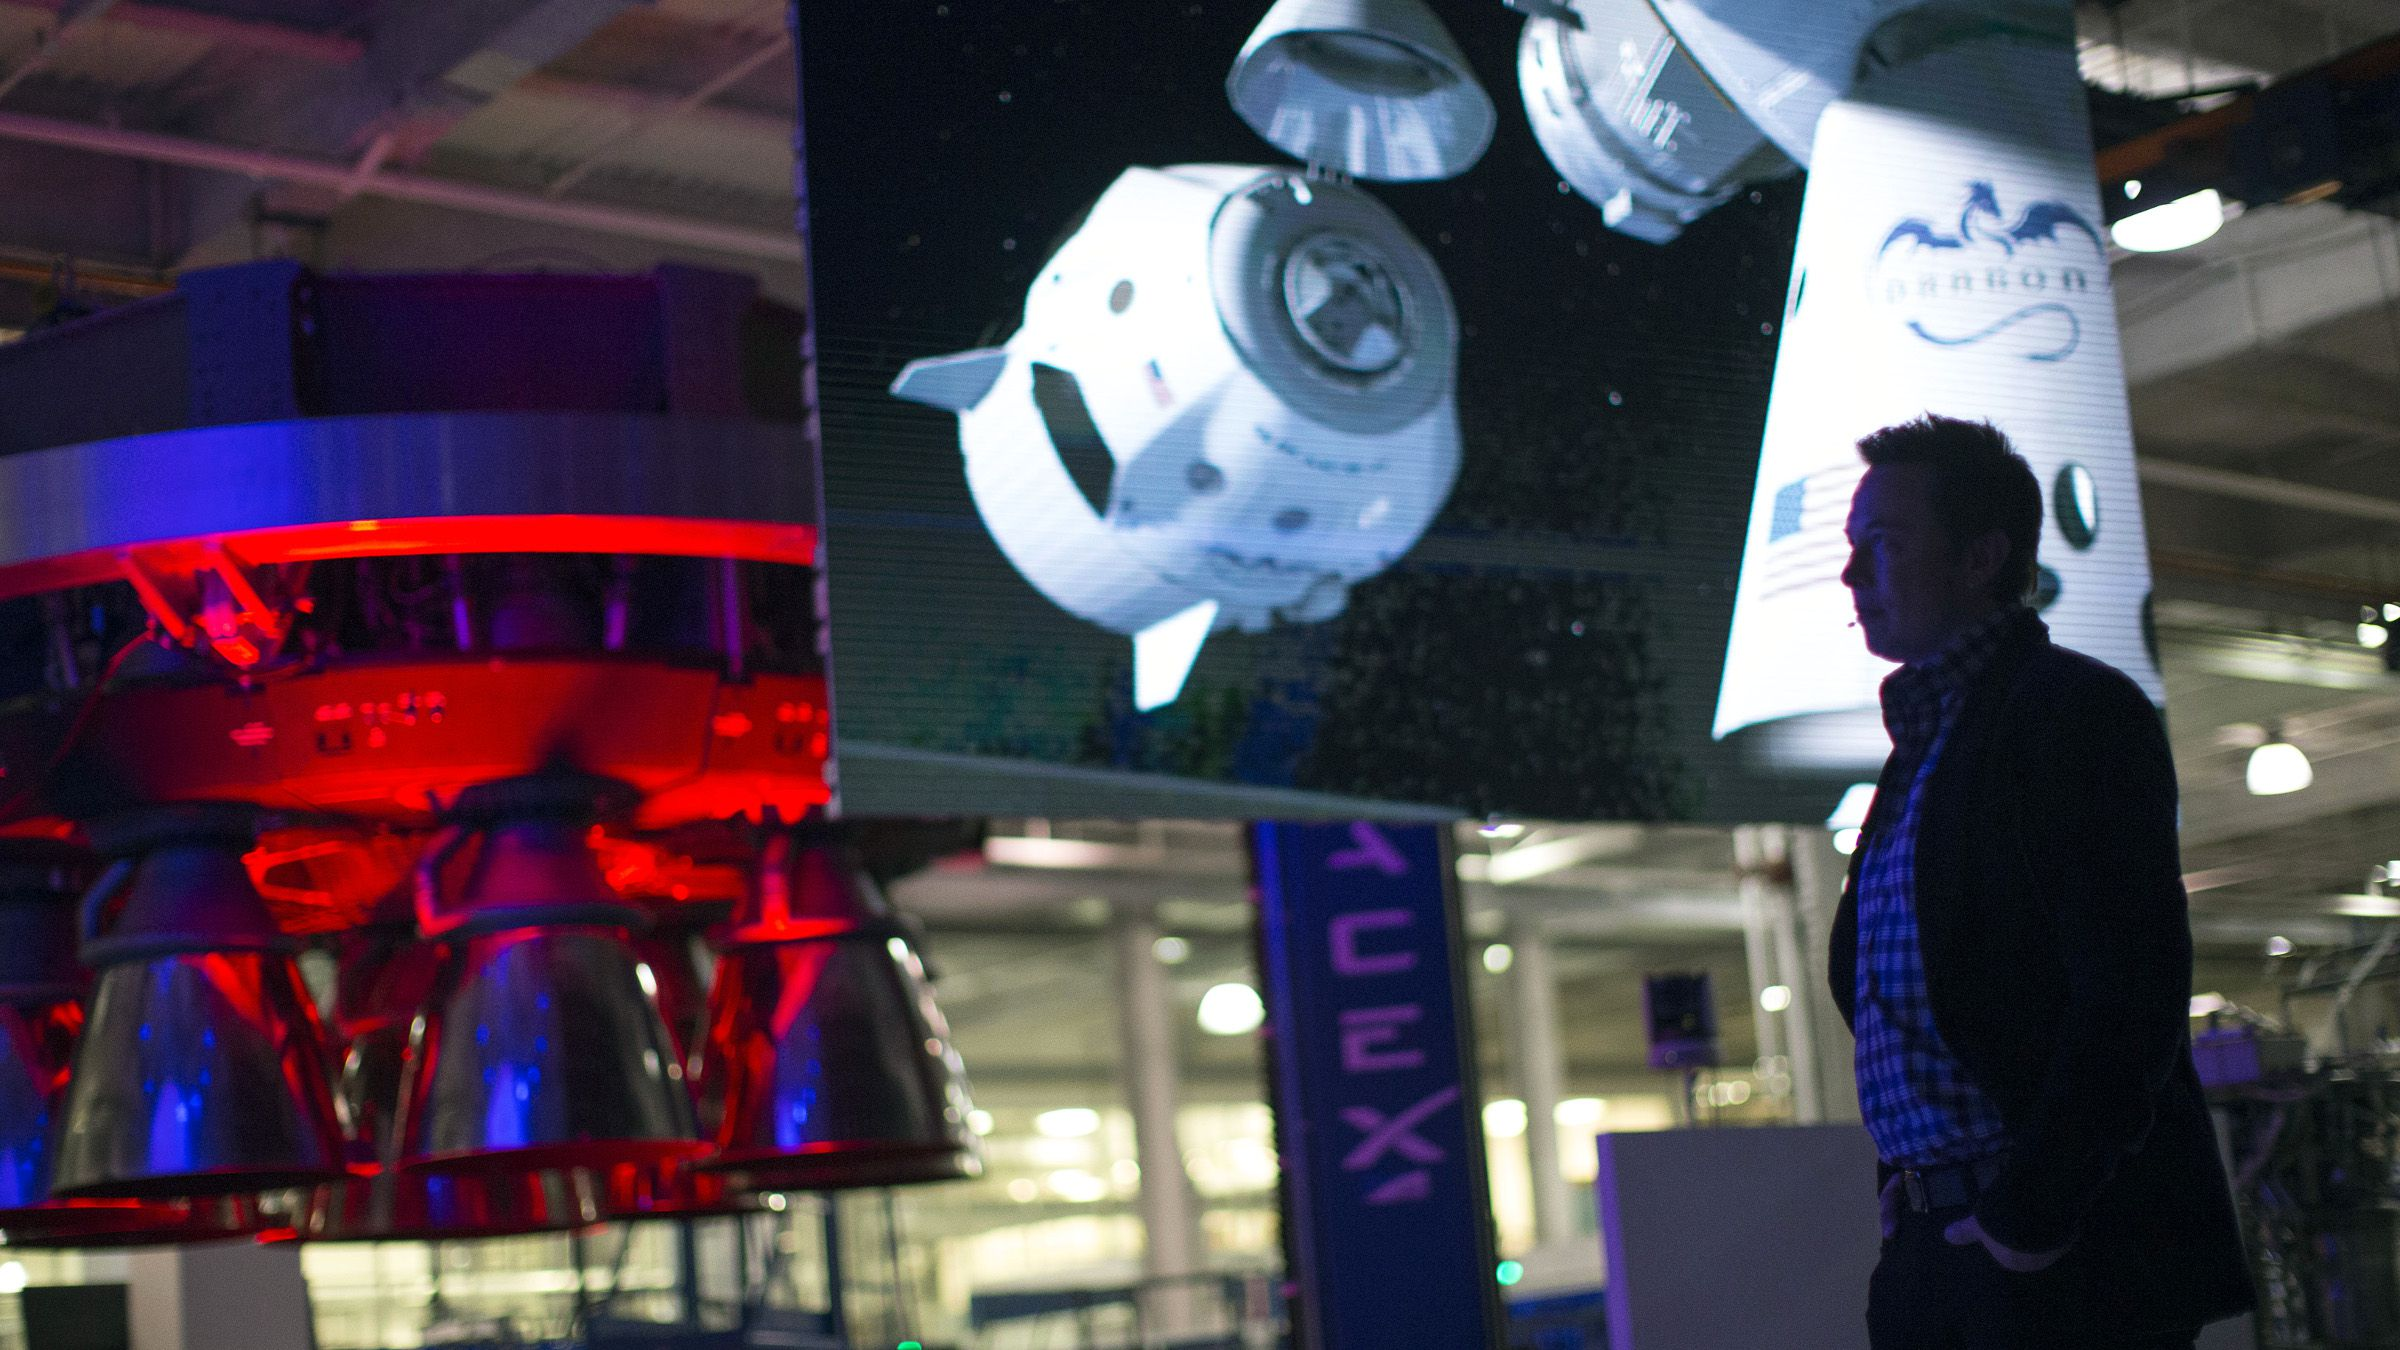 SpaceX CEO Elon Musk (R) introduces a video after unveiling the Dragon V2 spacecraft in Hawthorne, California May 29, 2014. Space Exploration Technologies, or SpaceX, on Thursday unveiled an upgraded passenger version of the Dragon cargo ship NASA buys for resupply runs to the International Space Station.